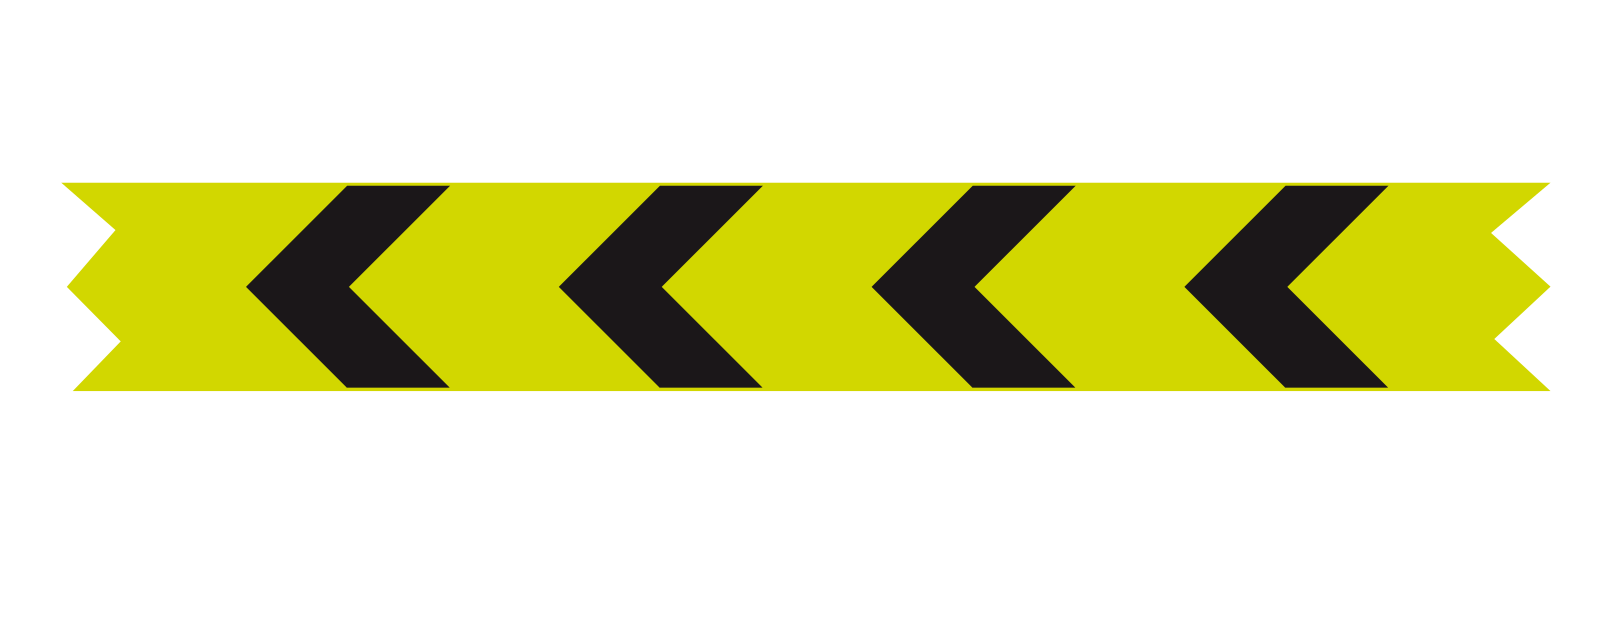 Extended curve alignment marker : 'Waveline' (Bend to left; right if chevrons are reversed)